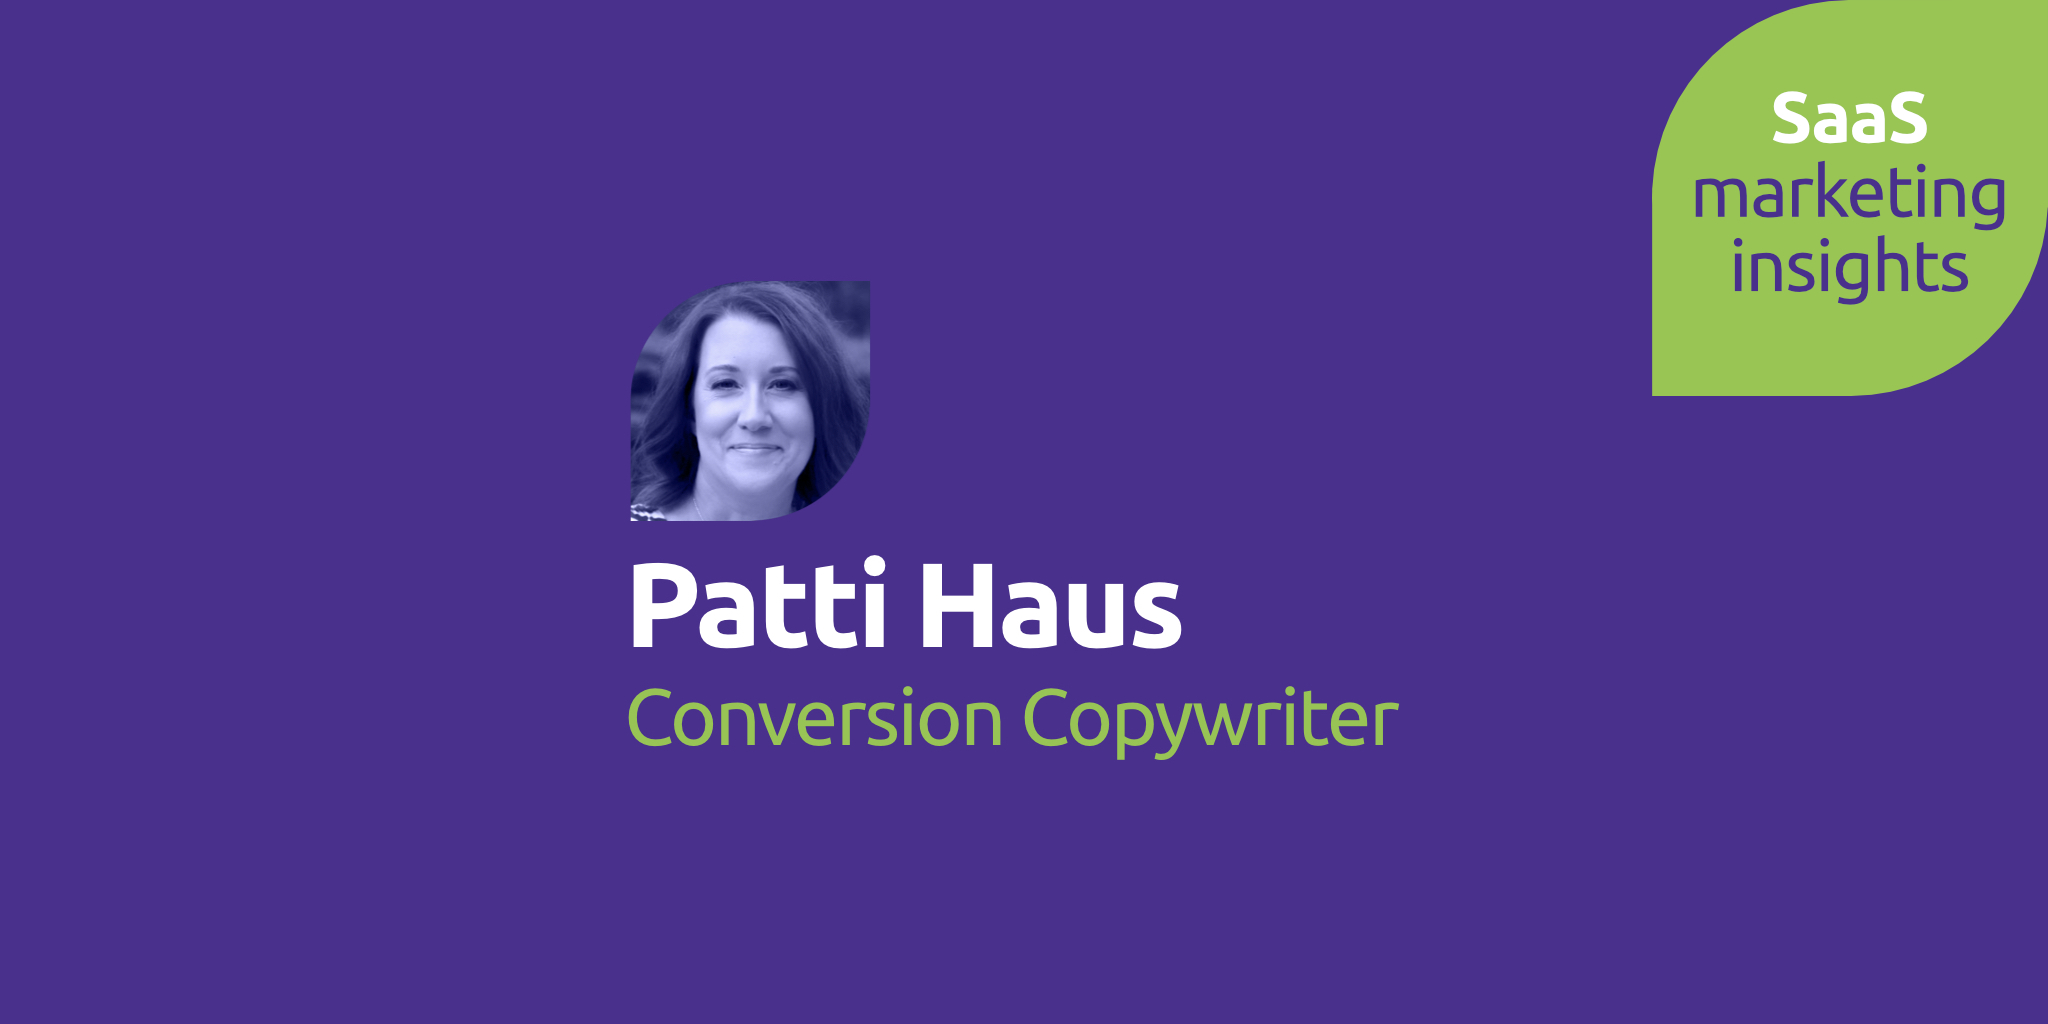 Patti Haus, Conversion Copywriter